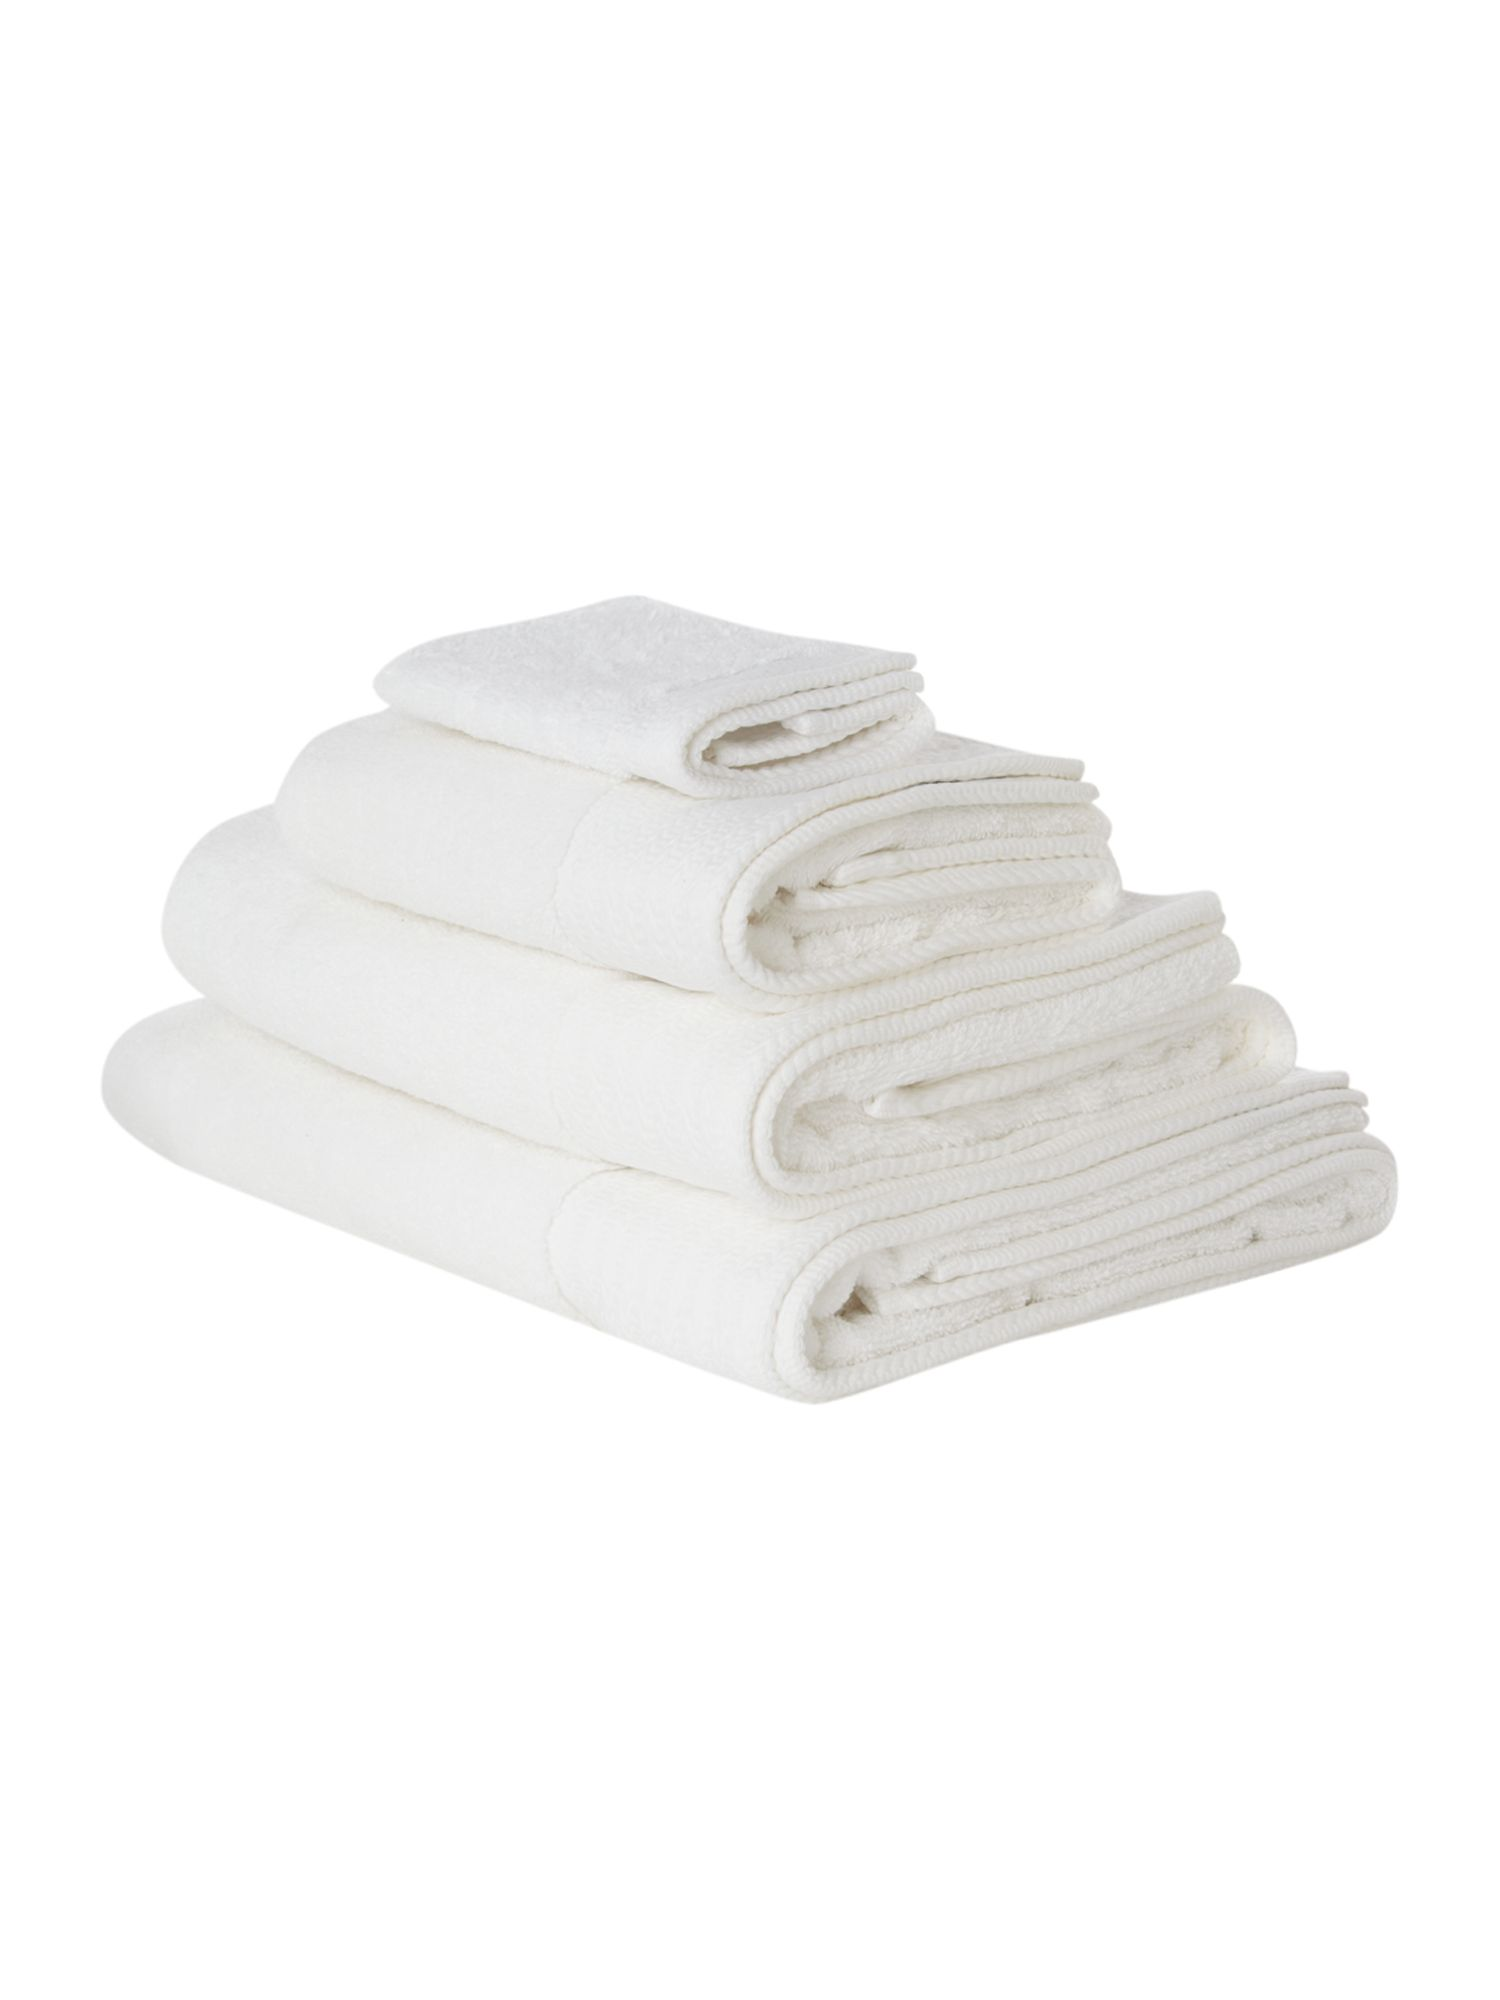 Zero twist bath towels in white